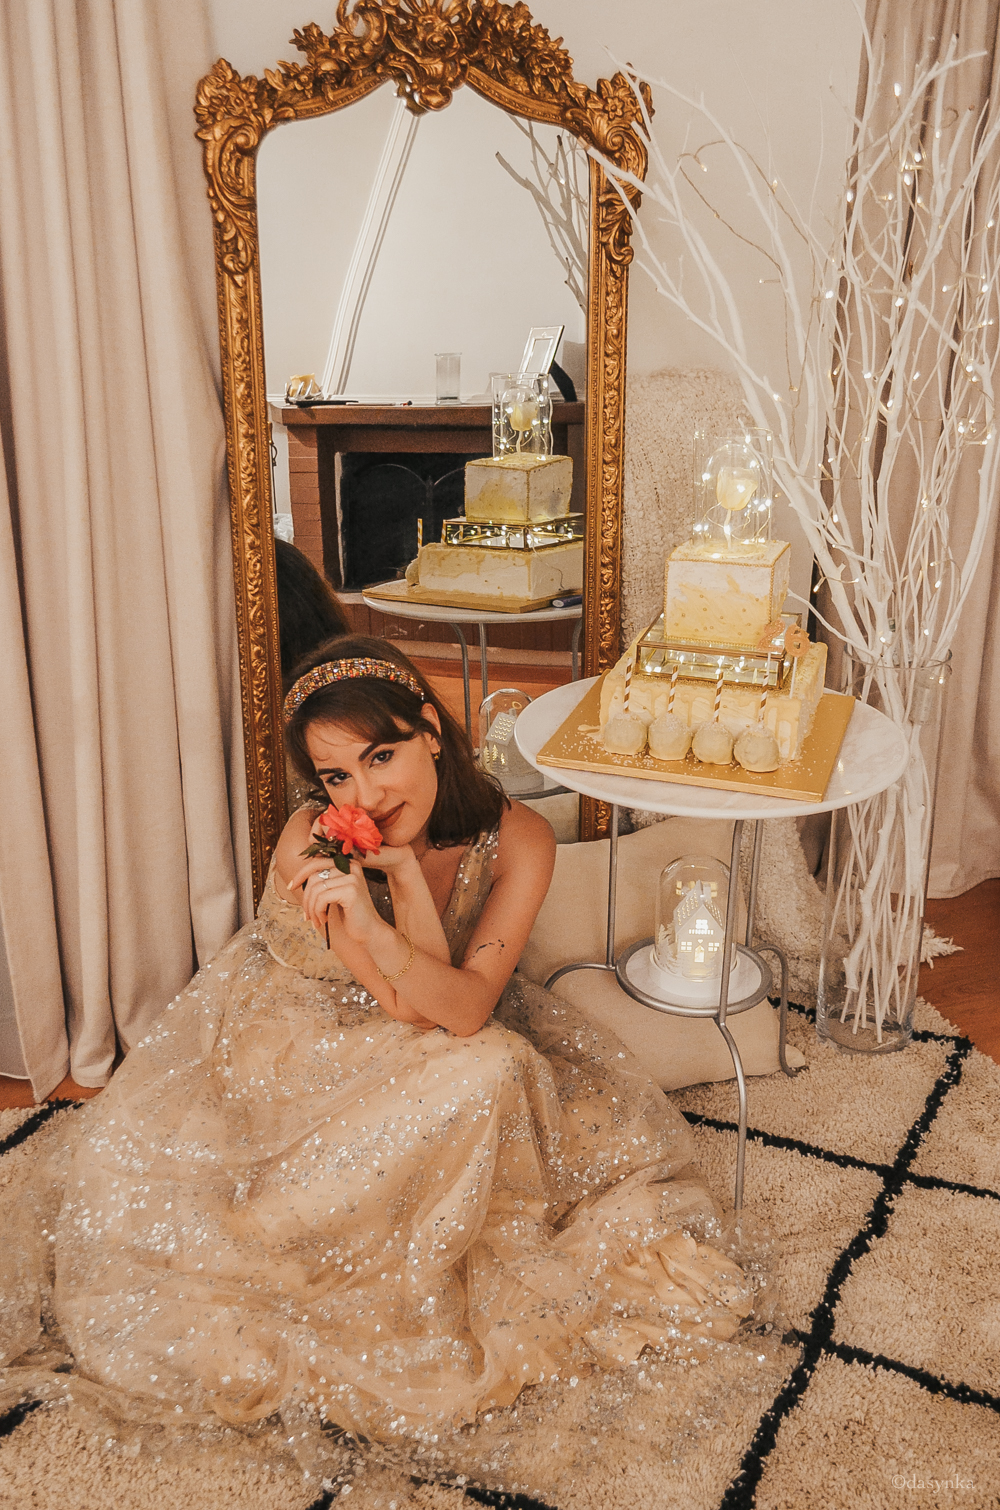 dasynka-fashion-blog-blogger-influencer-inspiration-ootd-inspo-outfit-shooting-model-globettrotter-travel-lookbook-instagram-street-style-italy-lifestyle-outfit-poses-anastasia-princess-disney-lightroom-preset-ideas-gold-dress-birthday-cake-golden-mirror-gothic